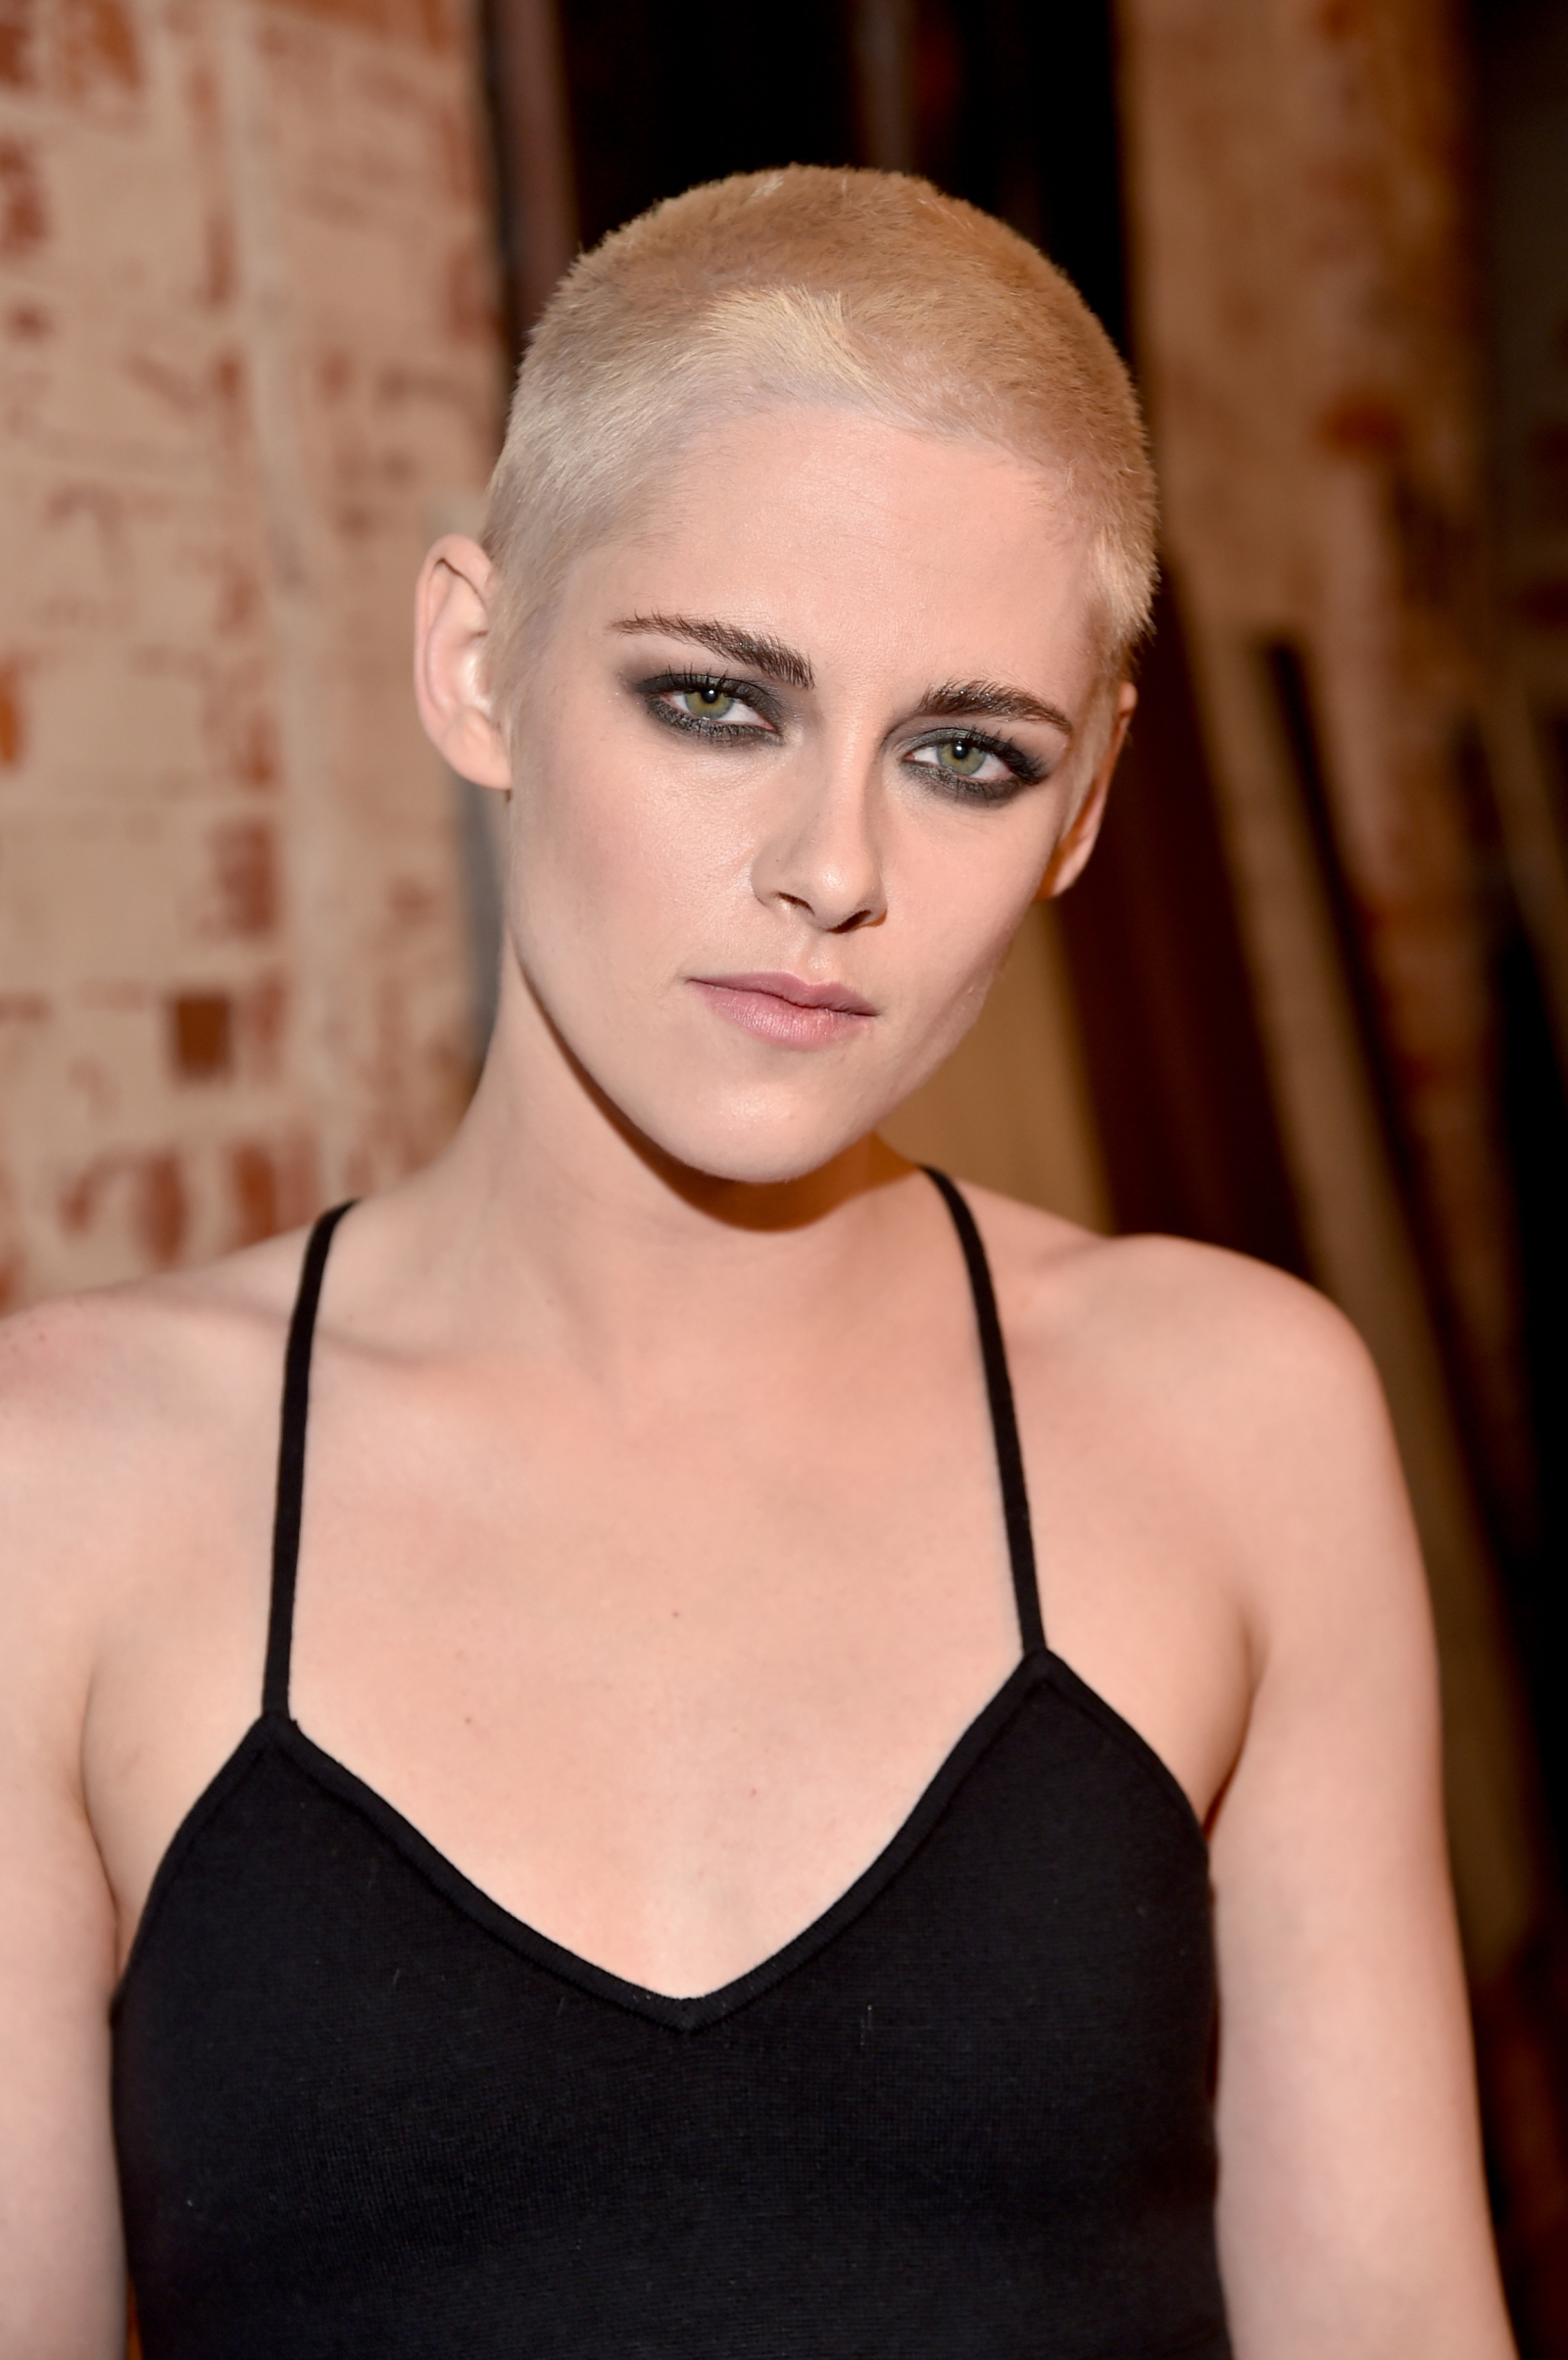 Robert Pattinson 'loves' Kristen Stewart's new look ... Kristen Stewart